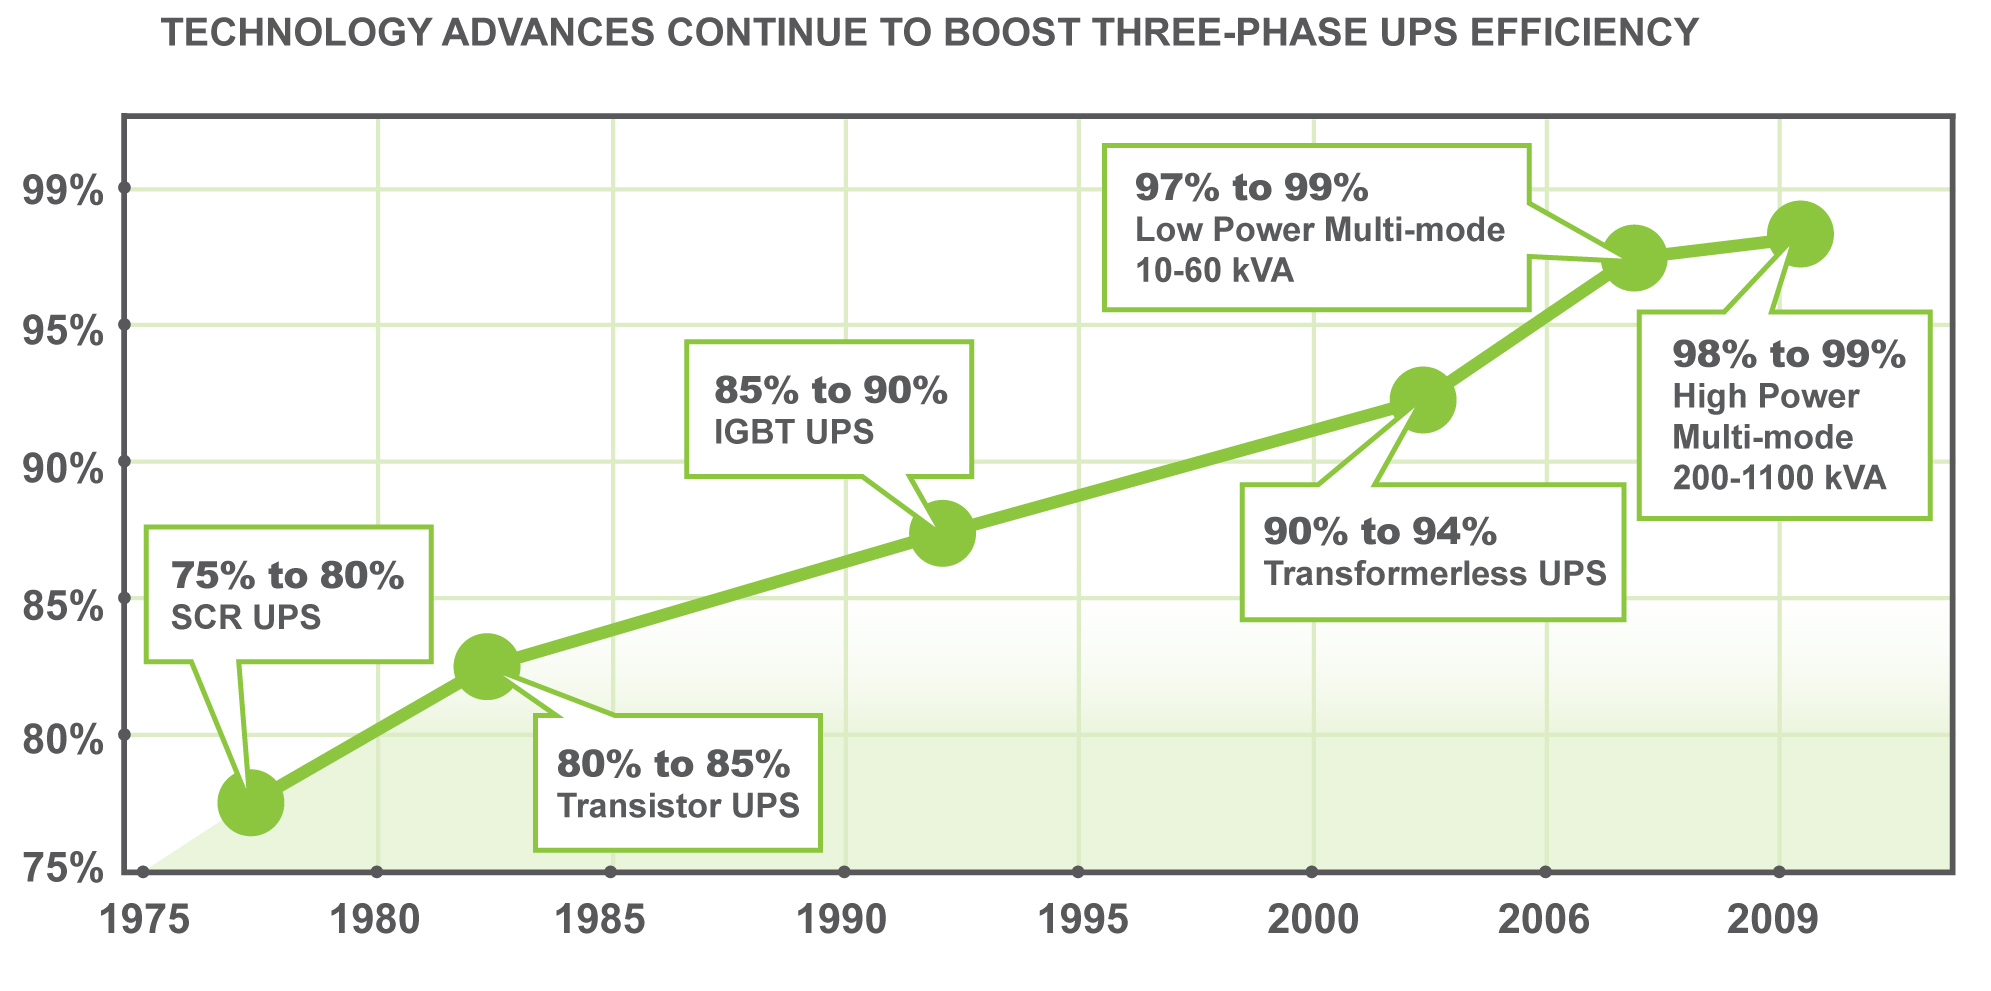 Figure 9. Technology advances have steadily improved UPS efficiency in the last three decades. Efficiency is profoundly influenced by UPS design or operating mode.